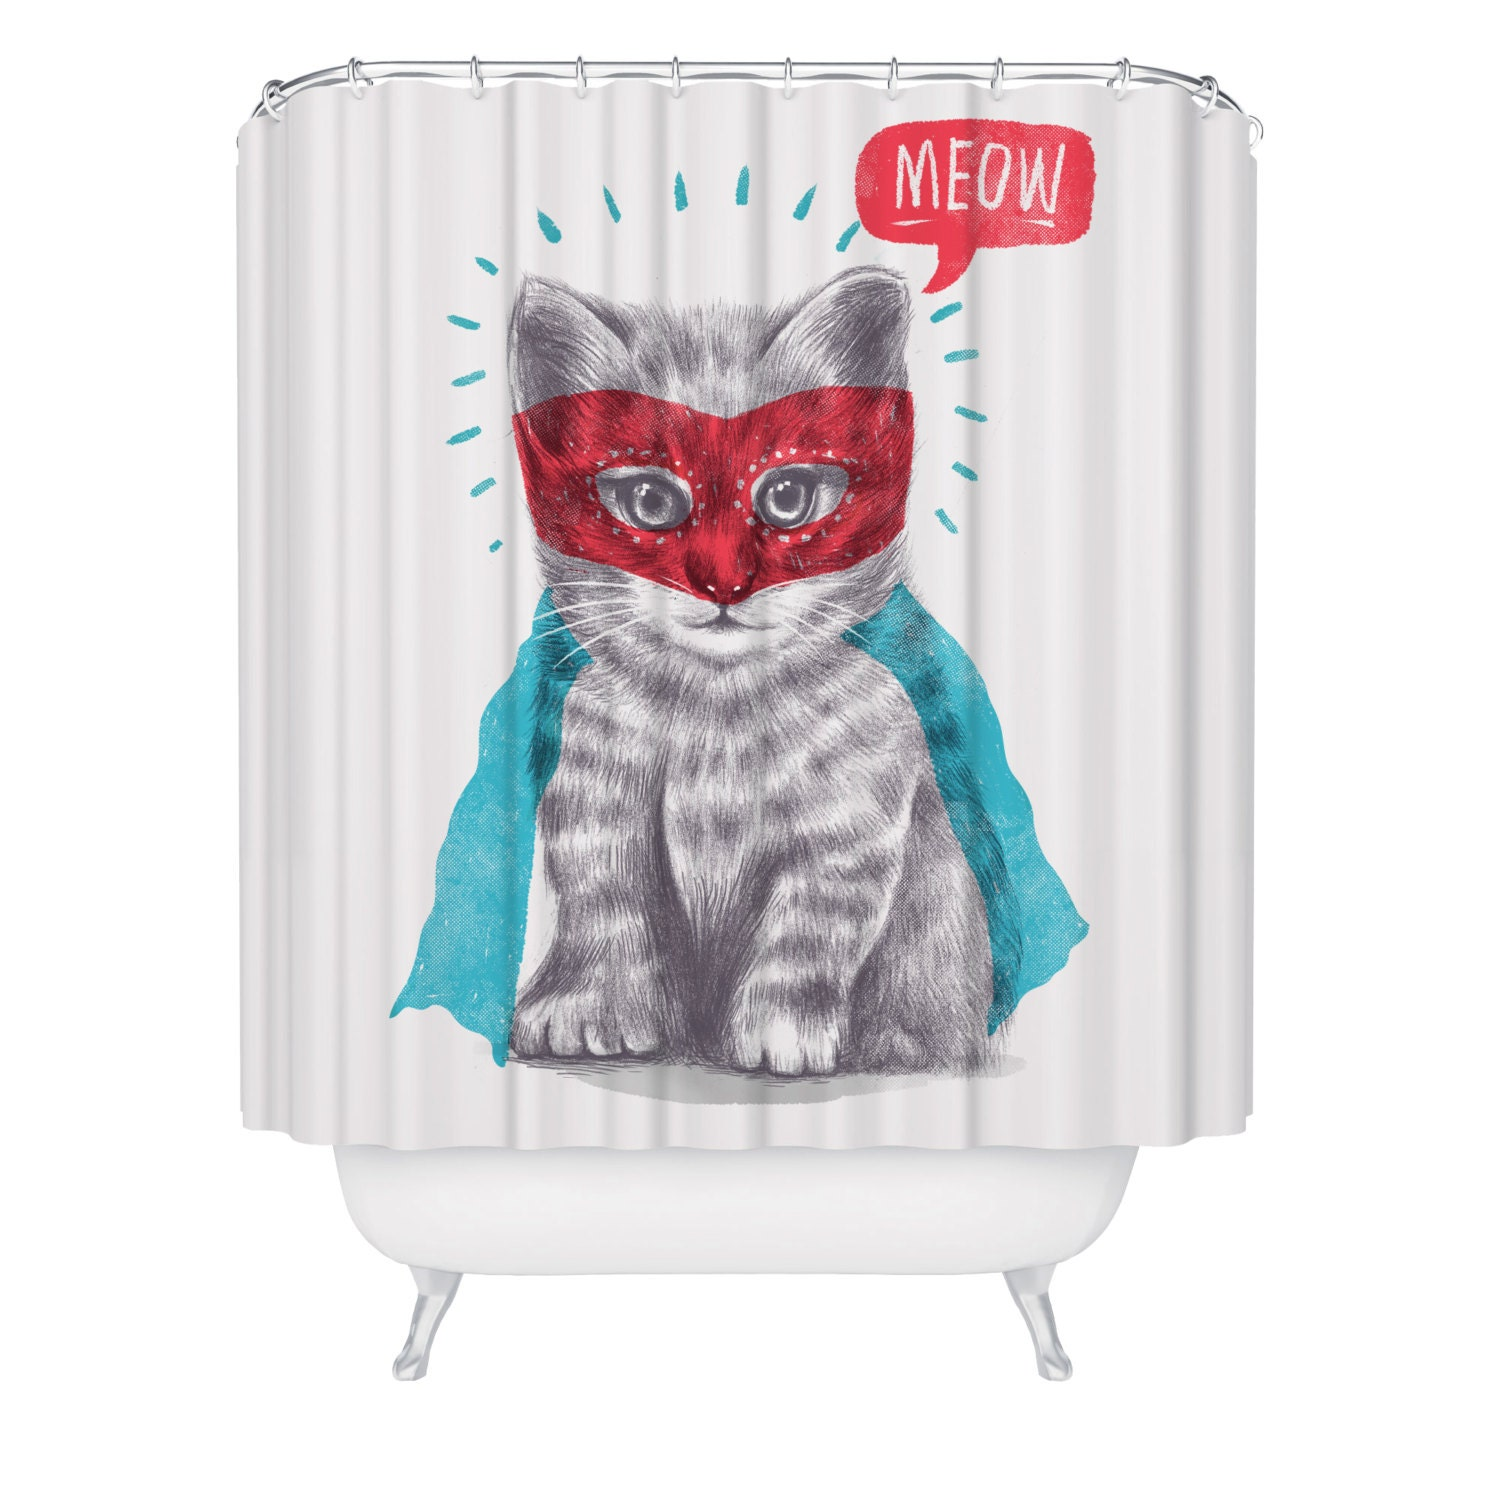 Cat Shower Curtain Funny Superhero Kitten